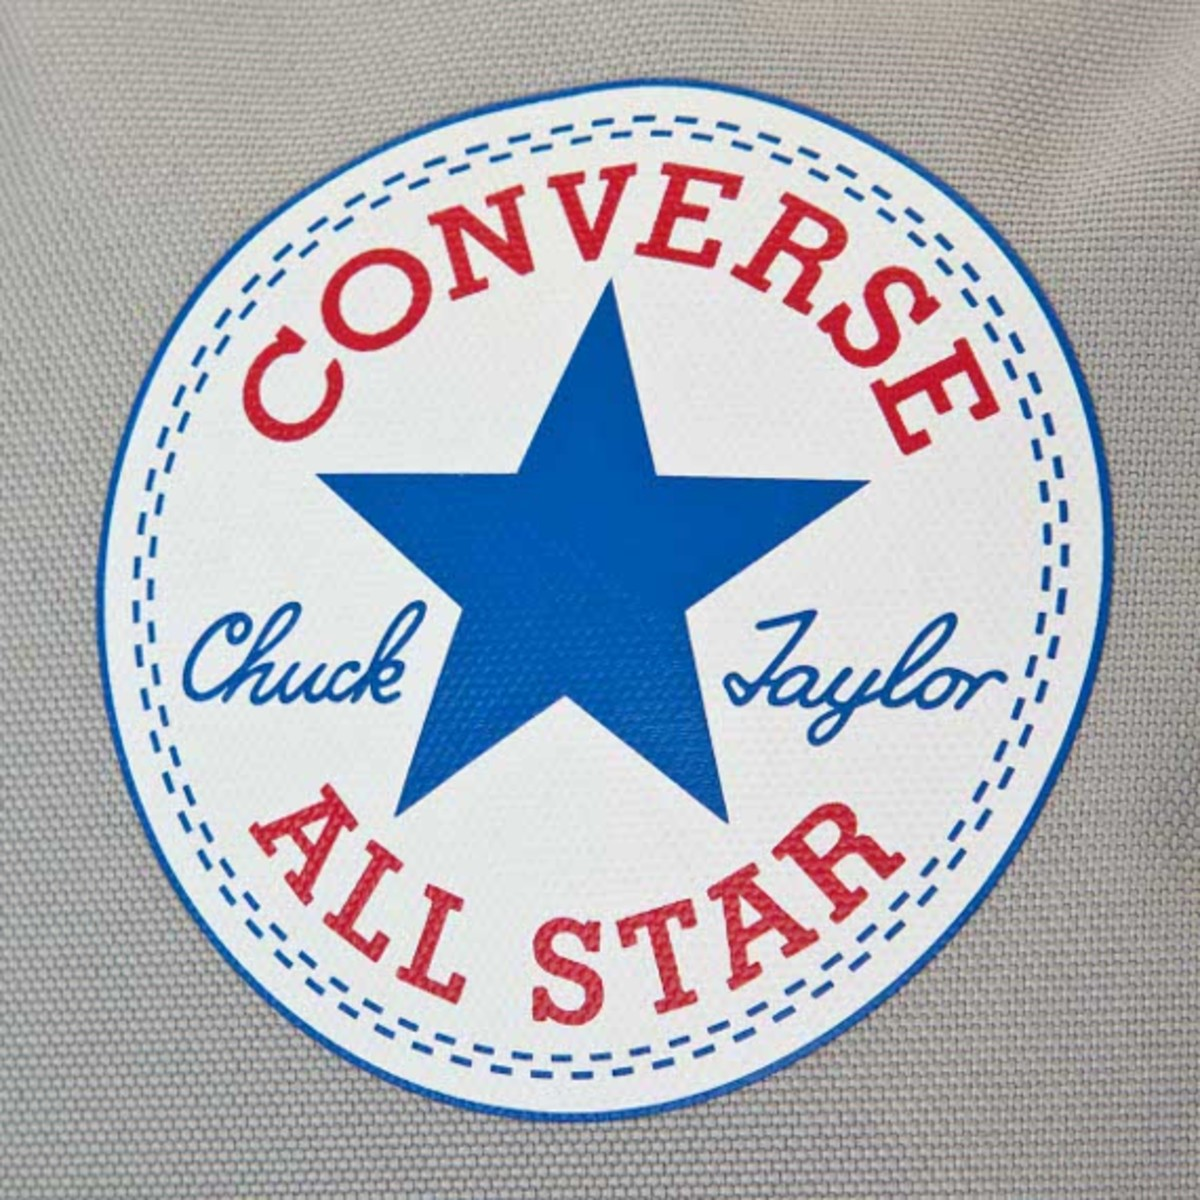 converse-bag-collection-09